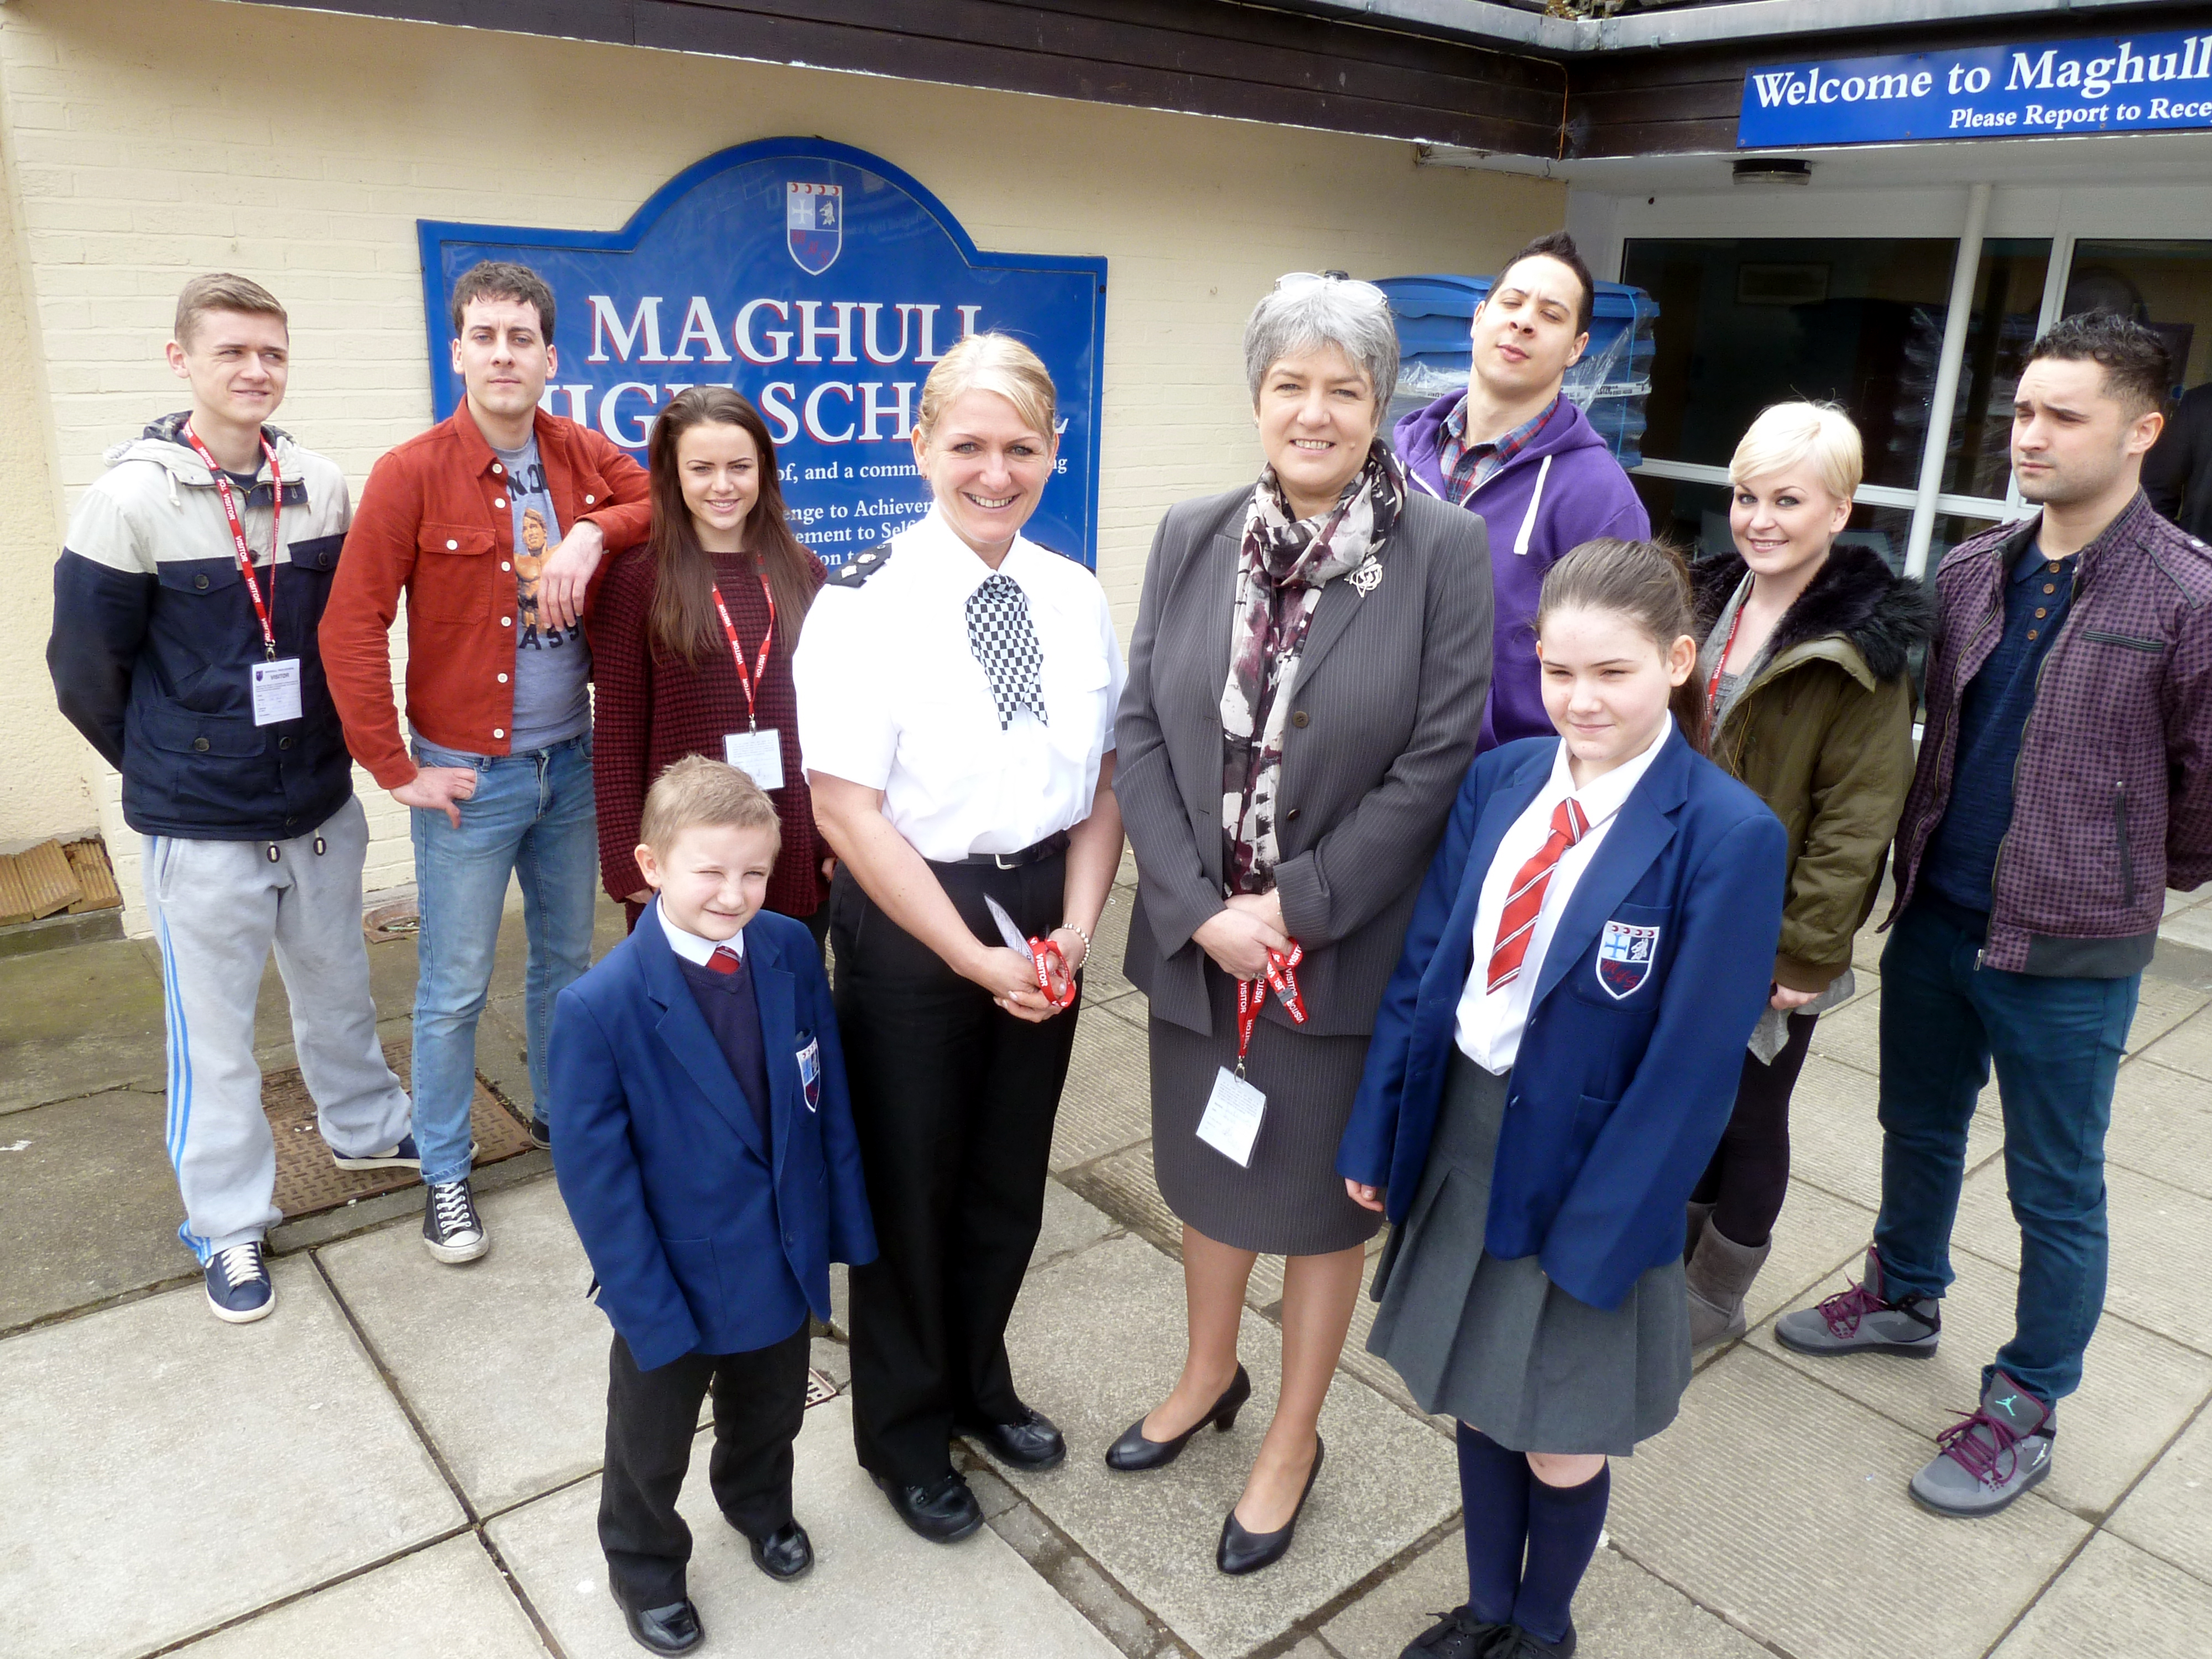 Merseyside Police and Crime Commissioner Jane Kennedy and Sefton Area Police Commander Chief Superintendent Nikki Holland with The Terriers cast members and pupils after the performance at Maghull High.